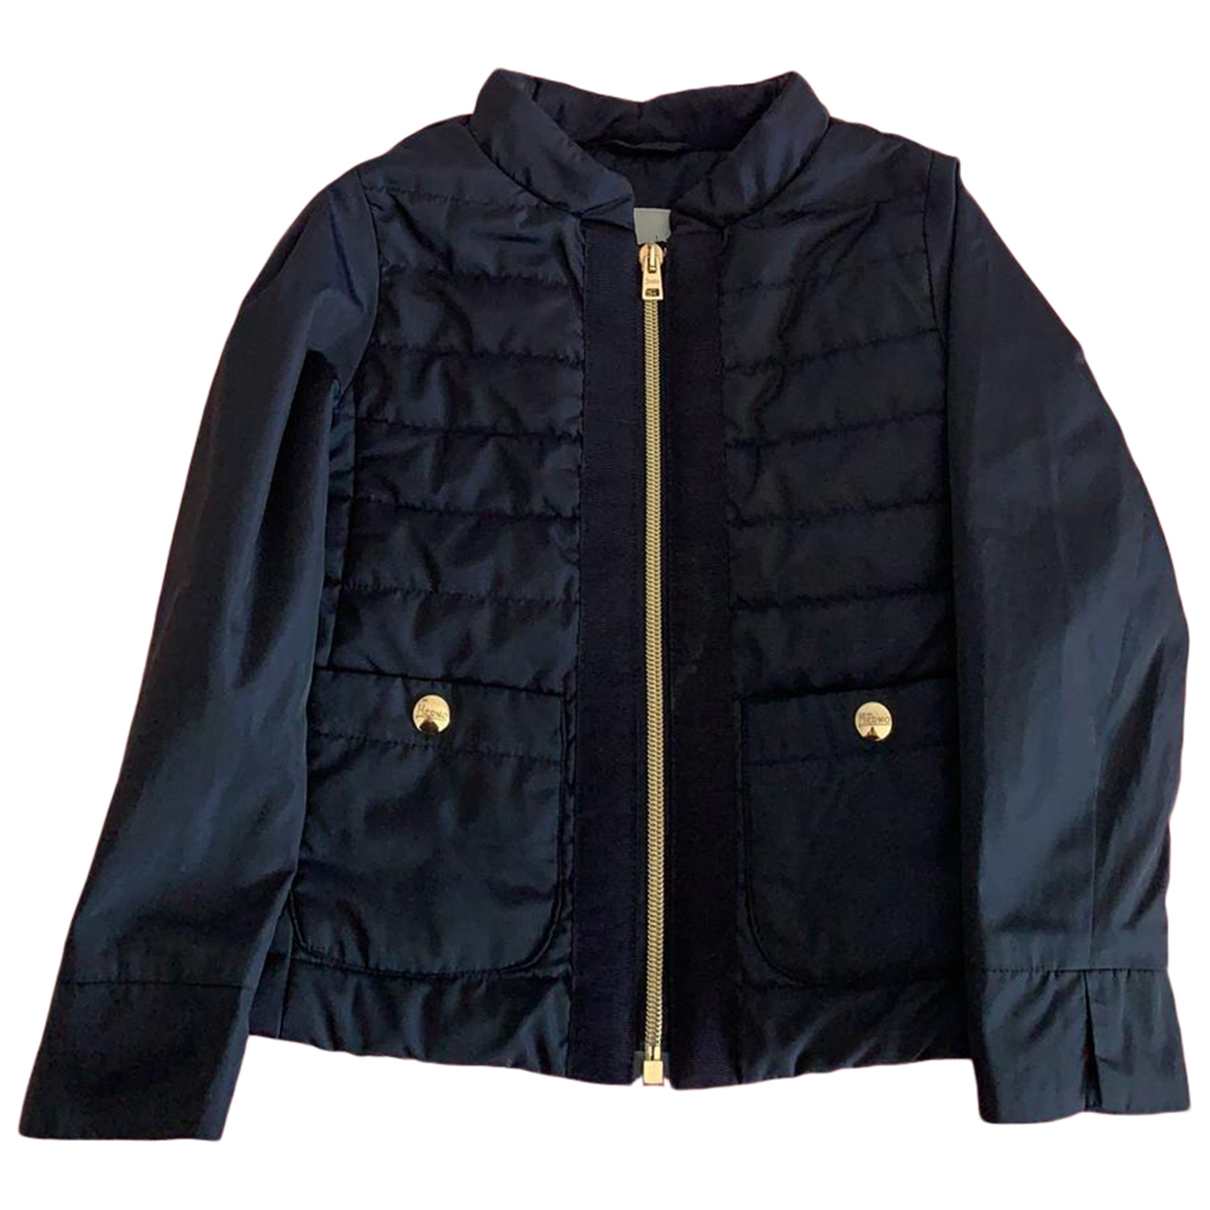 Herno \N Blue jacket & coat for Kids 4 years - up to 102cm FR